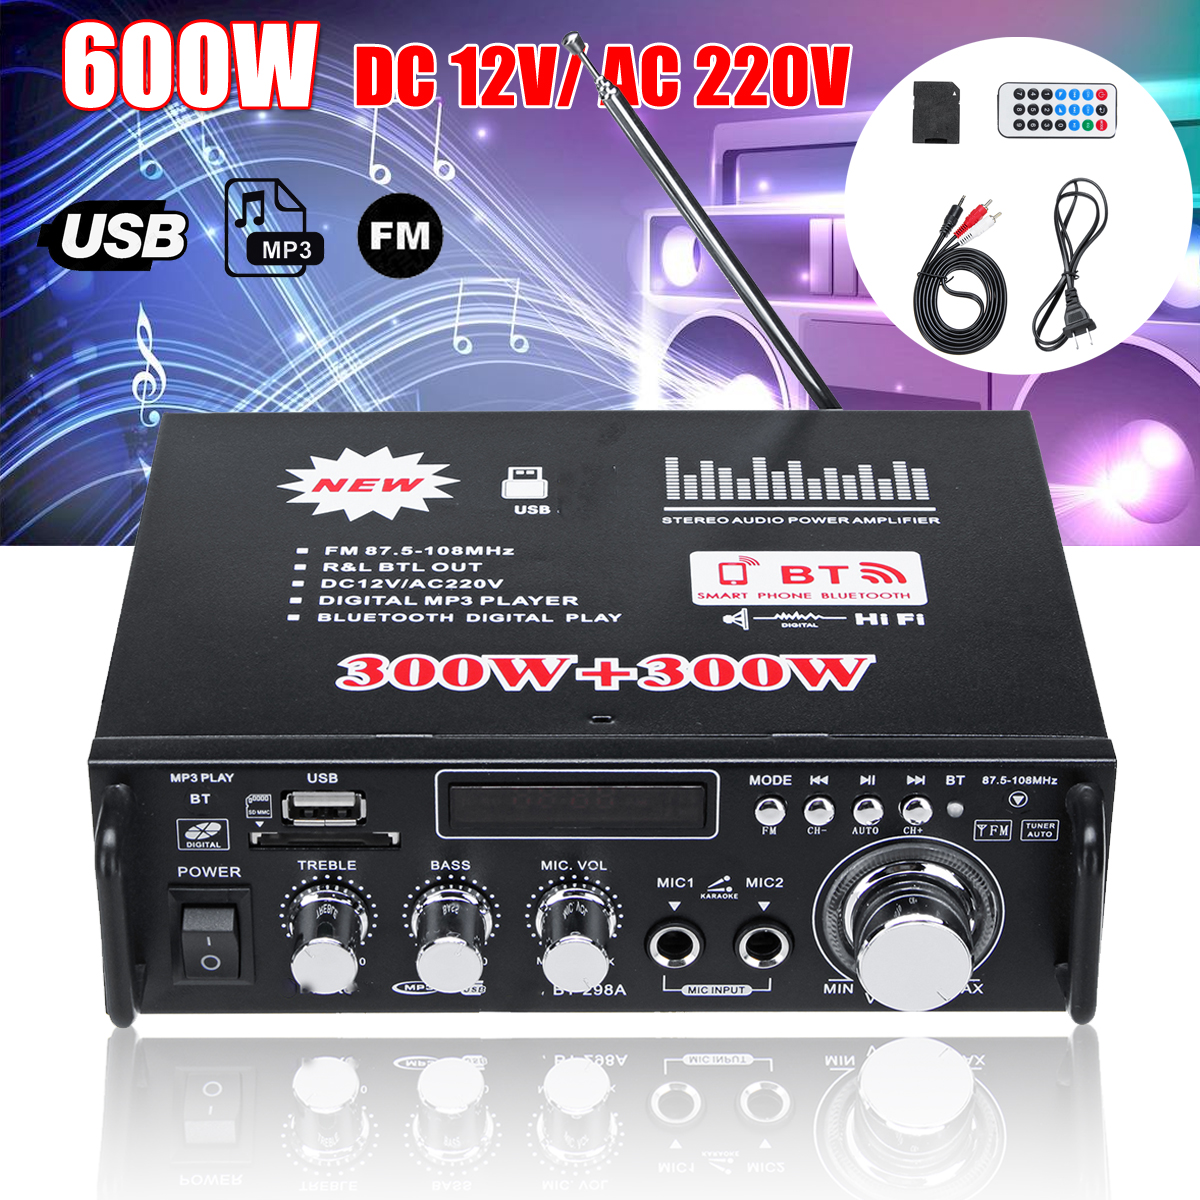 600W 12V 220V USB Car Bluetooth HiFi Stereo Audio Power Amplifier Remote Control for Car Auto Home Audio USB Flash Disk Radio new car bluetooth hifi bass power amp digital auto amplifier stereo usb tf radio audio mp3 music with remote 220v